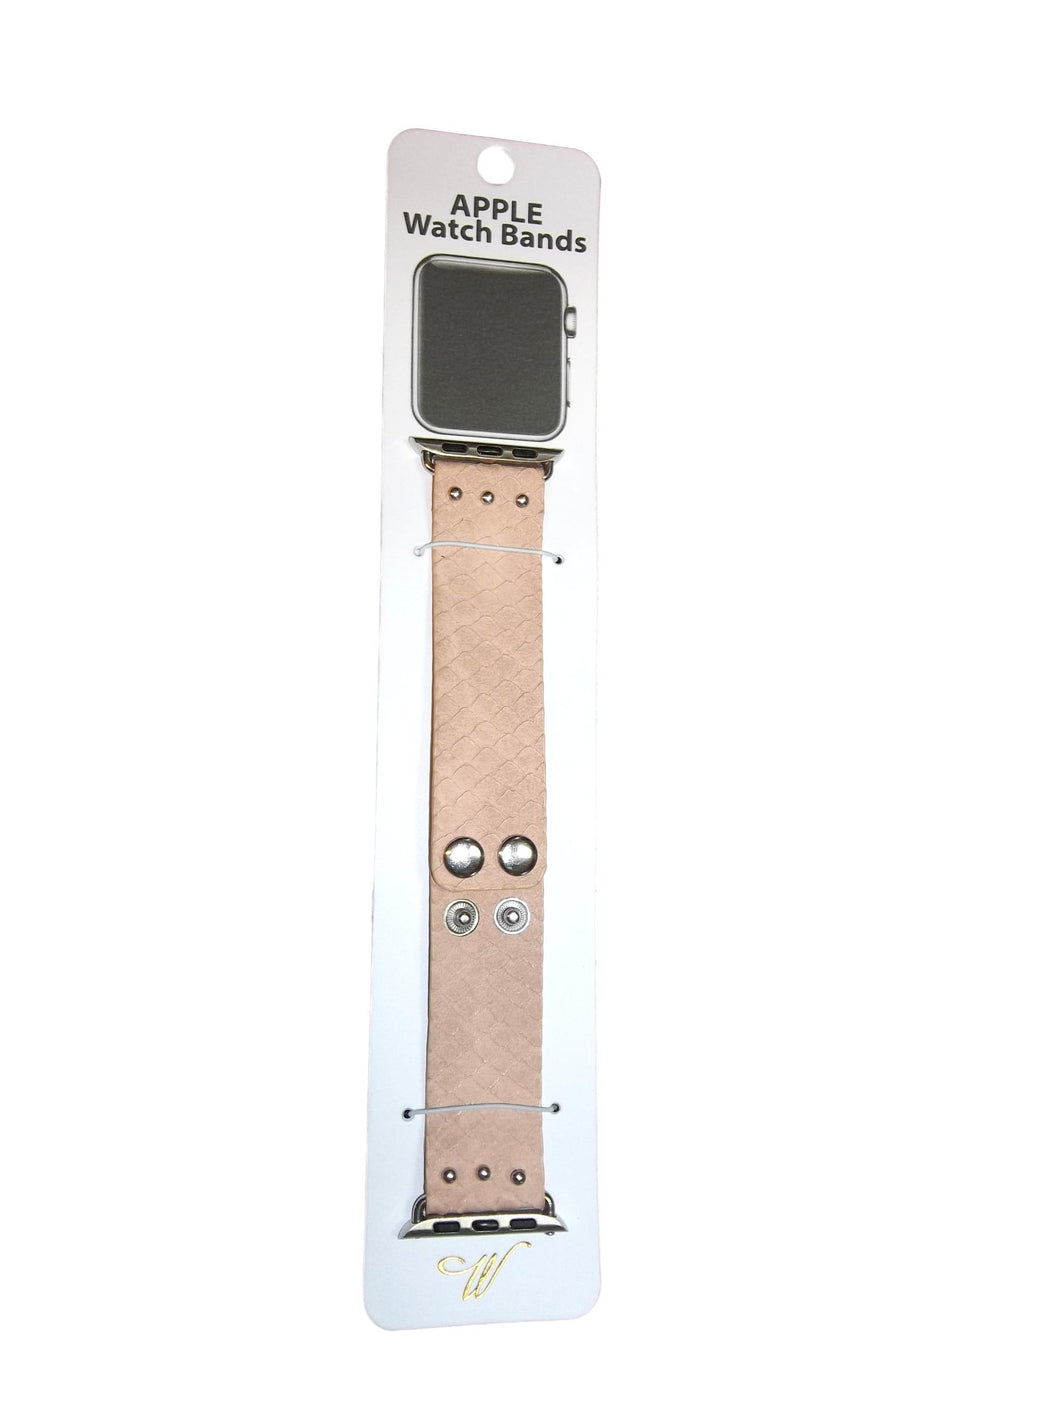 Scalloped Leather Apple Watch Bands